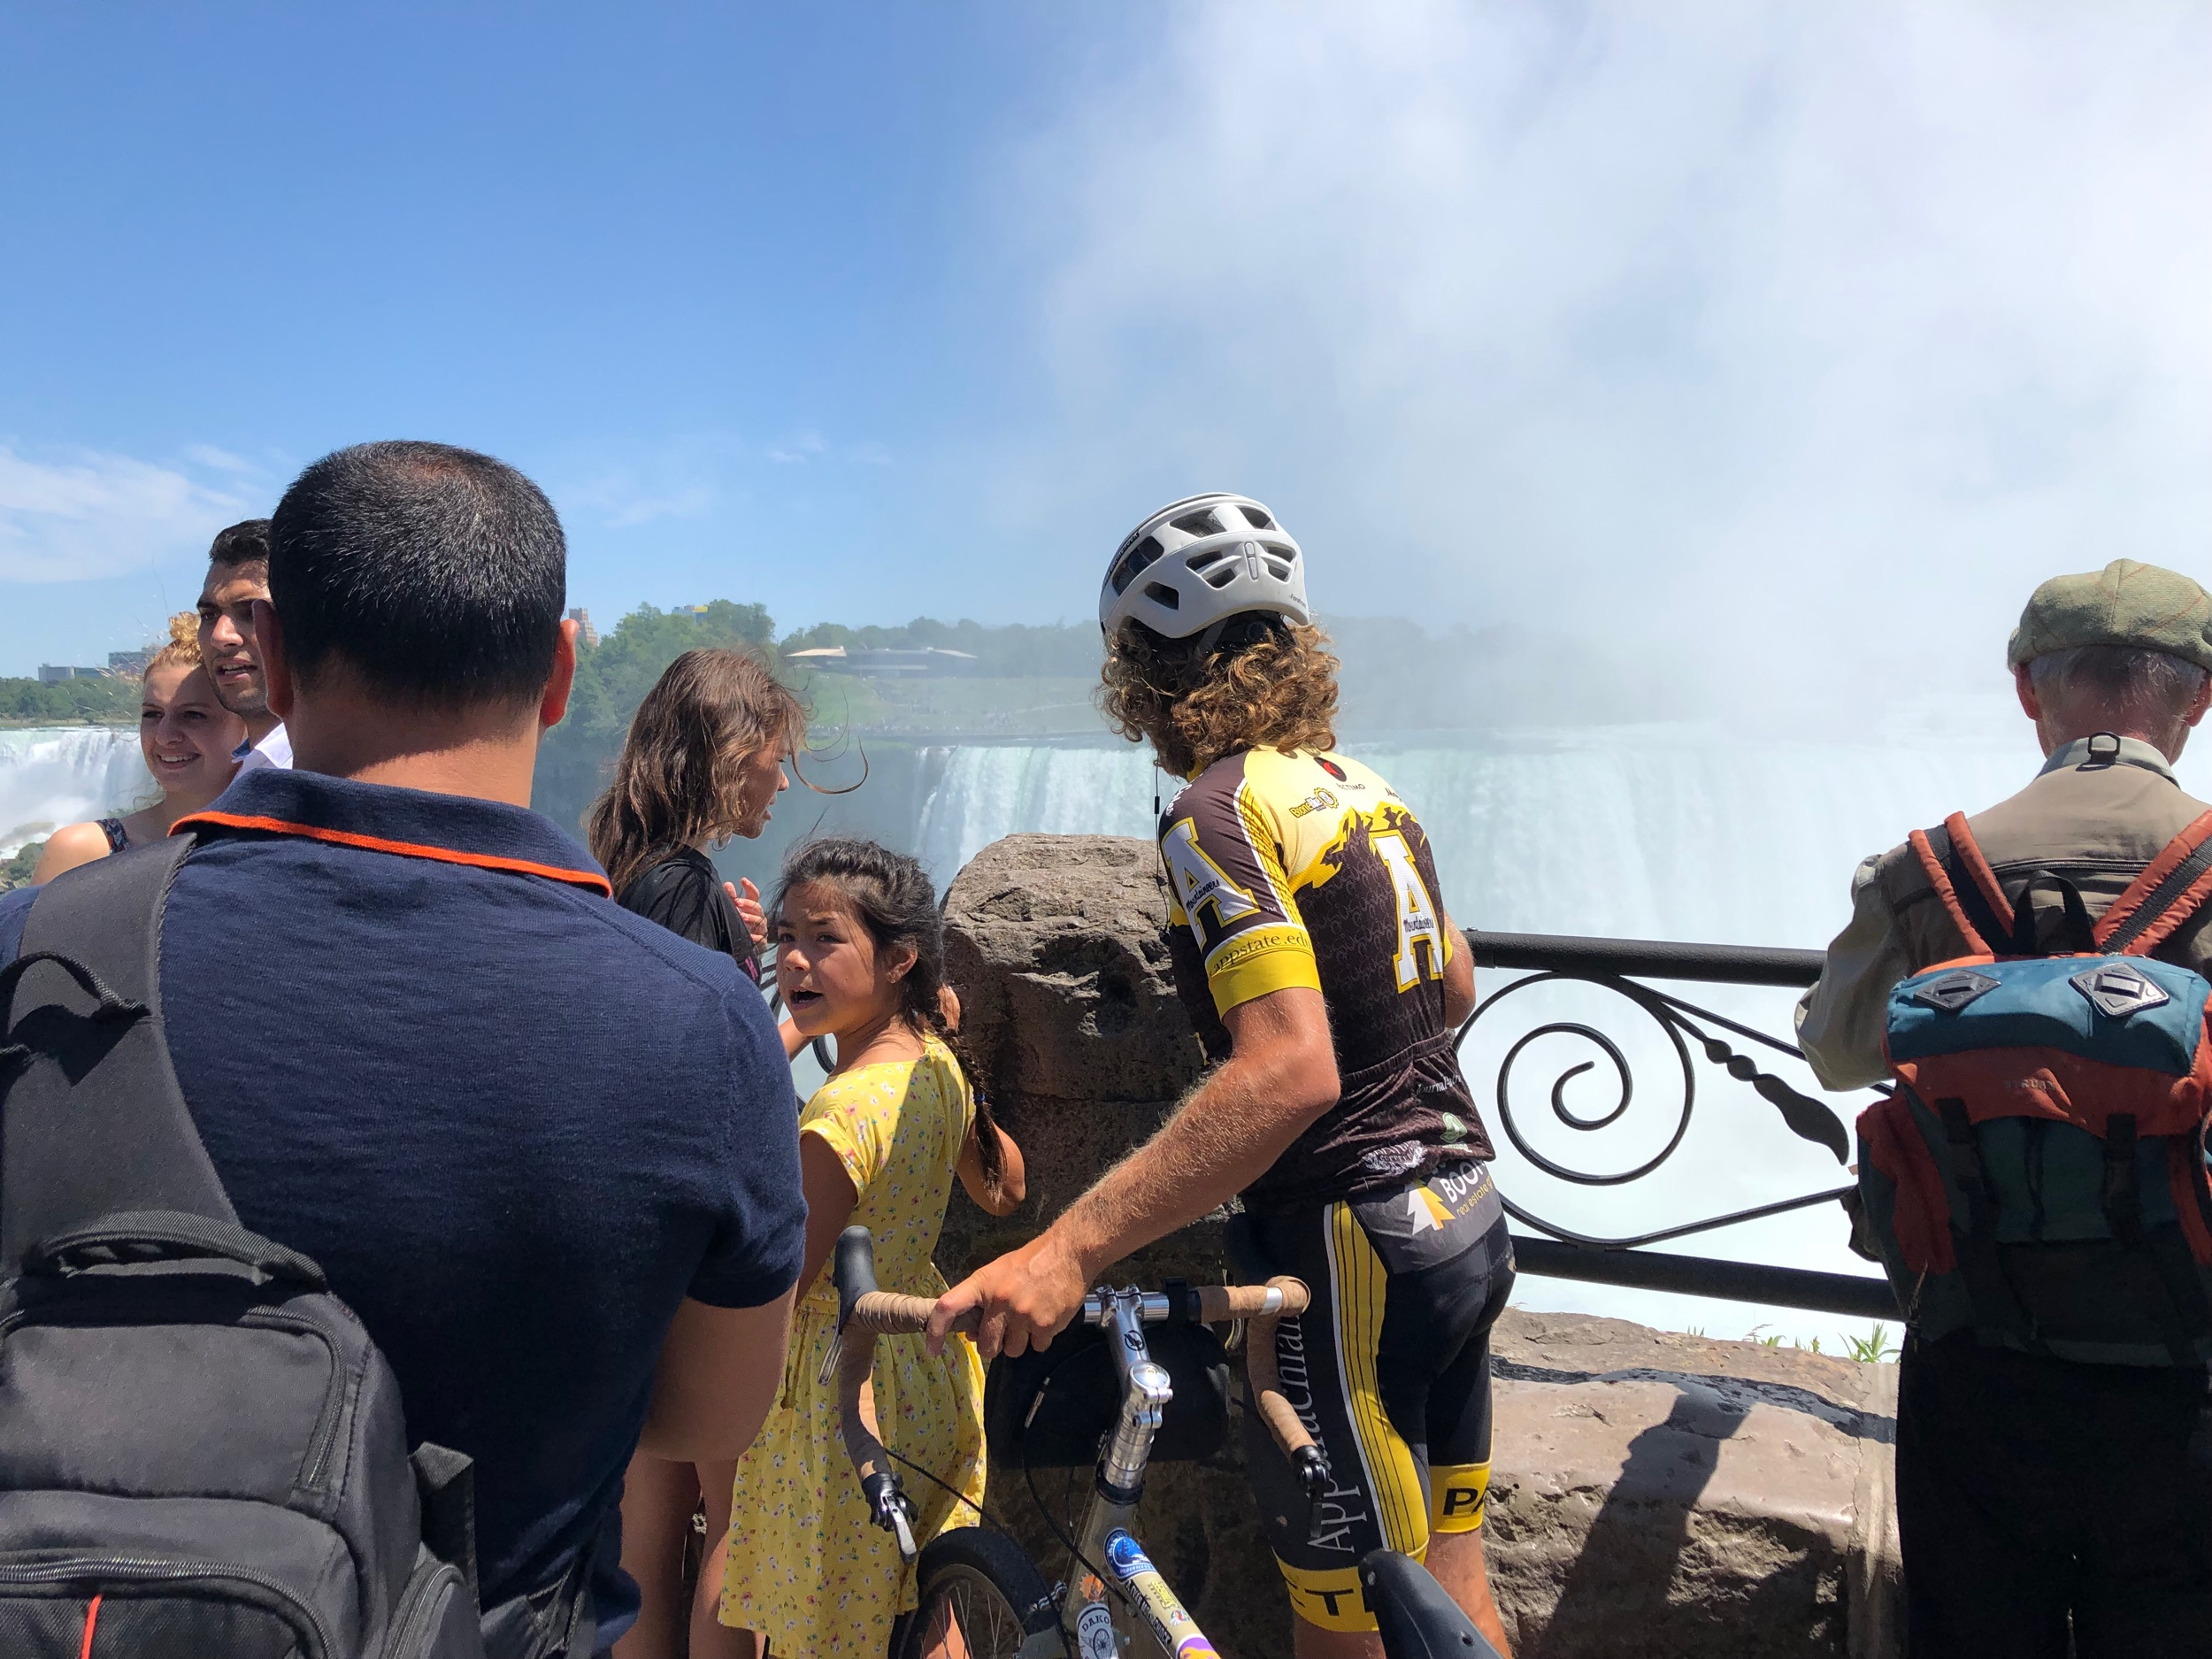 Evan fights his way through the crowd to get a glimpse of Niagara Falls